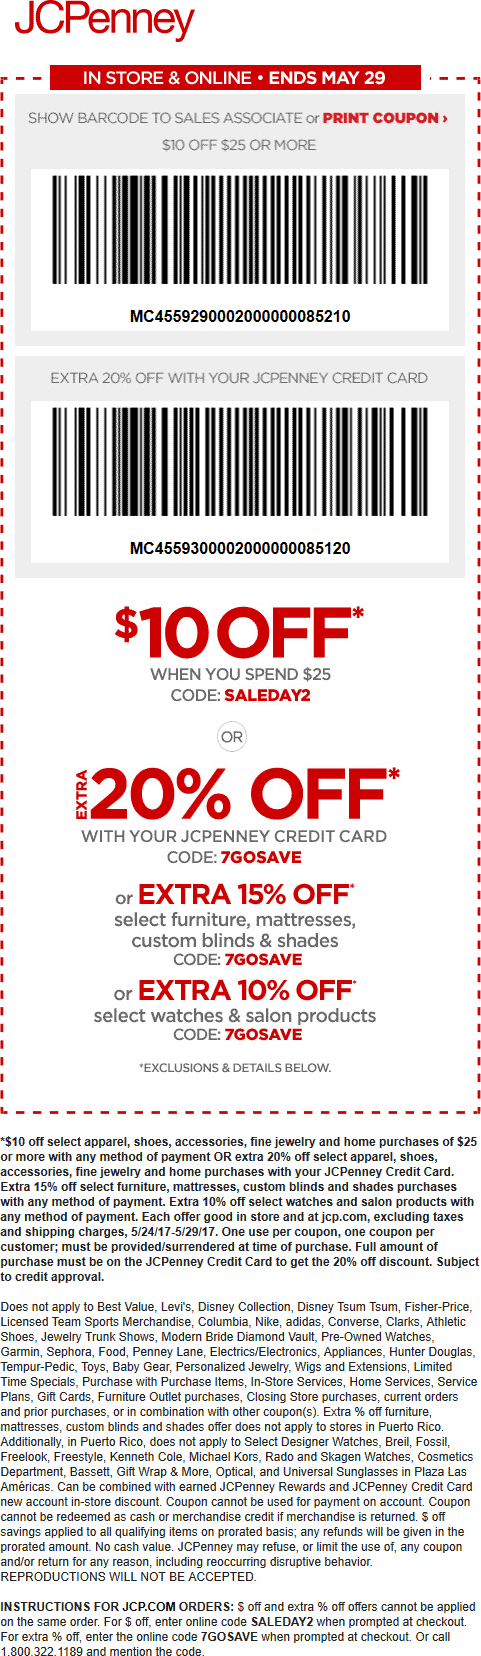 JCPenney.com Promo Coupon $10 off $25 at JCPenney, or online via promo code SALEDAY2